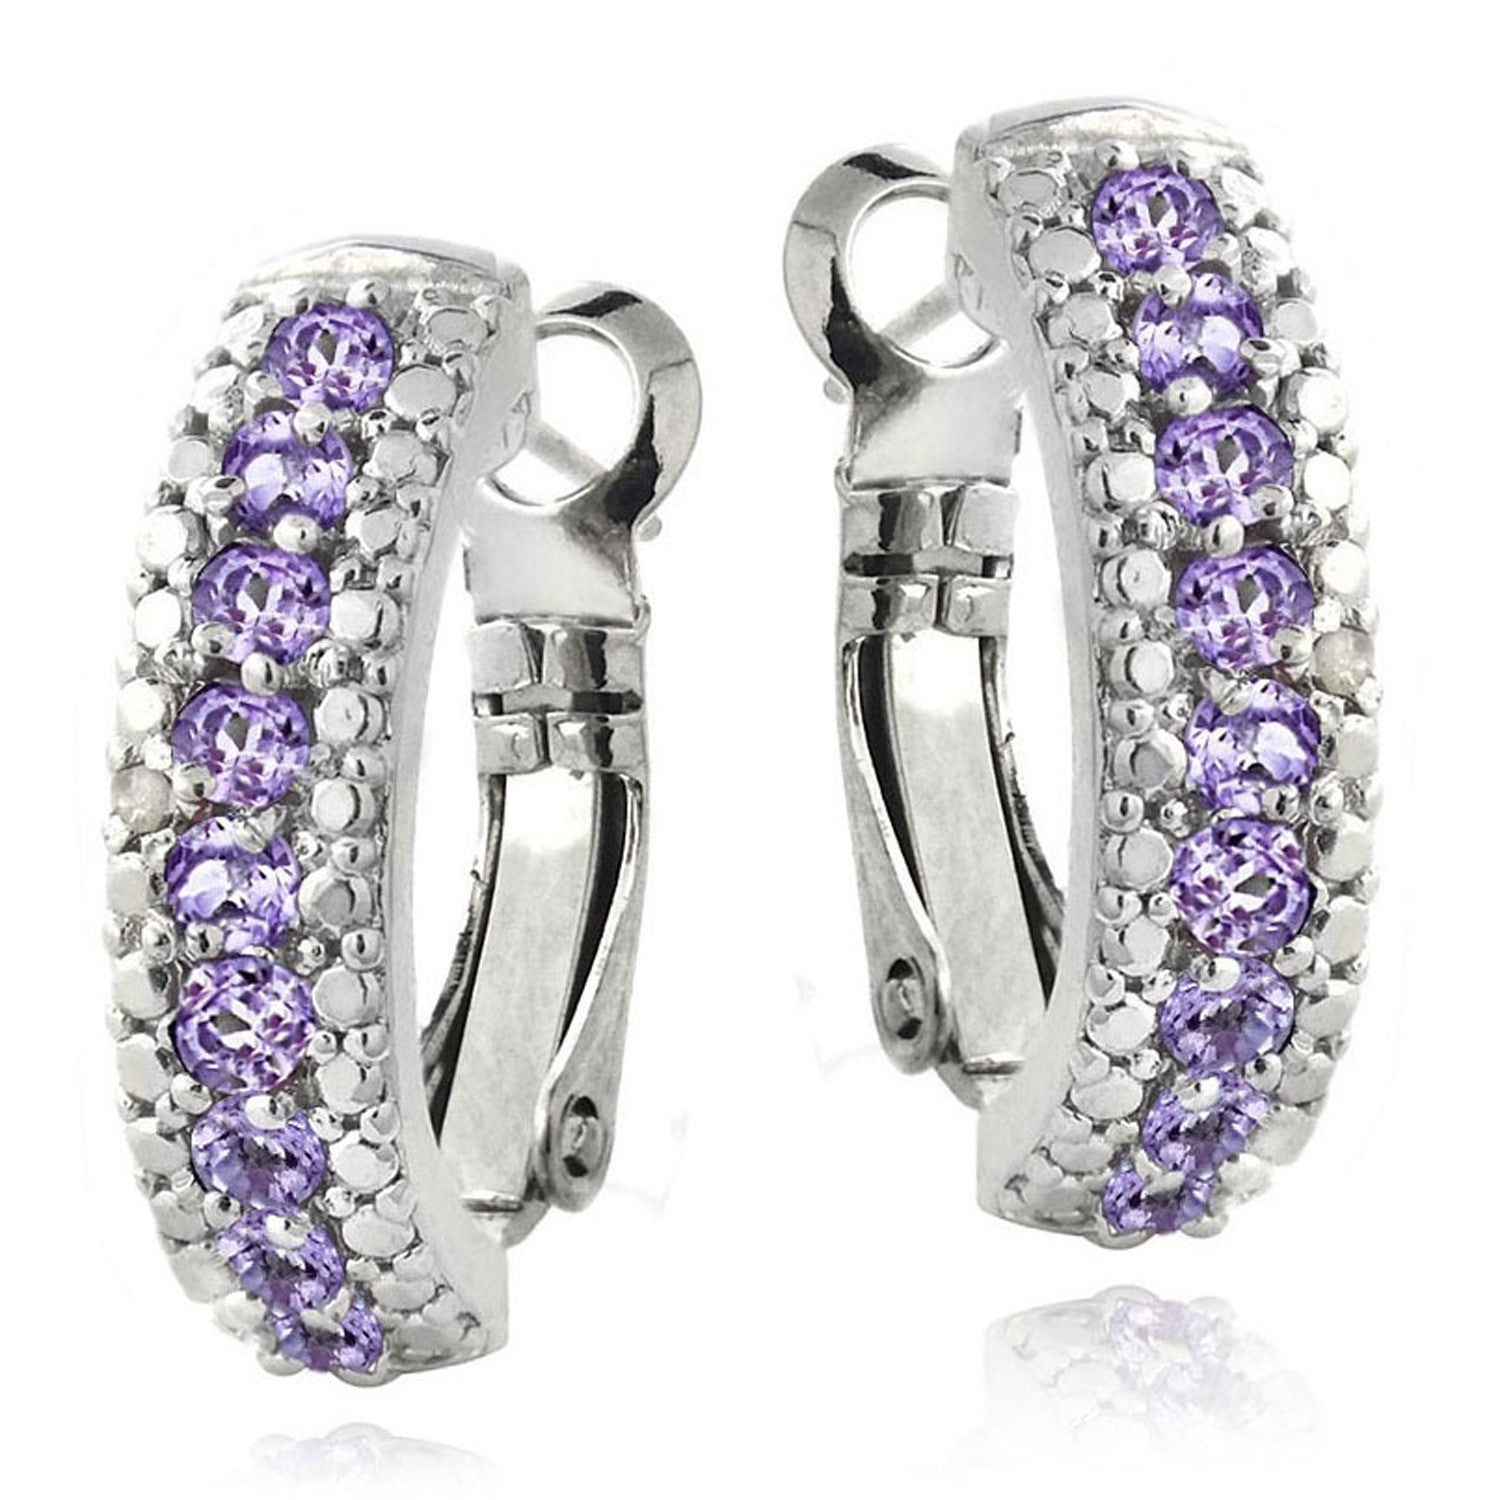 Half Hoop Gemstone & Diamond Accent Earrings - Amethyst